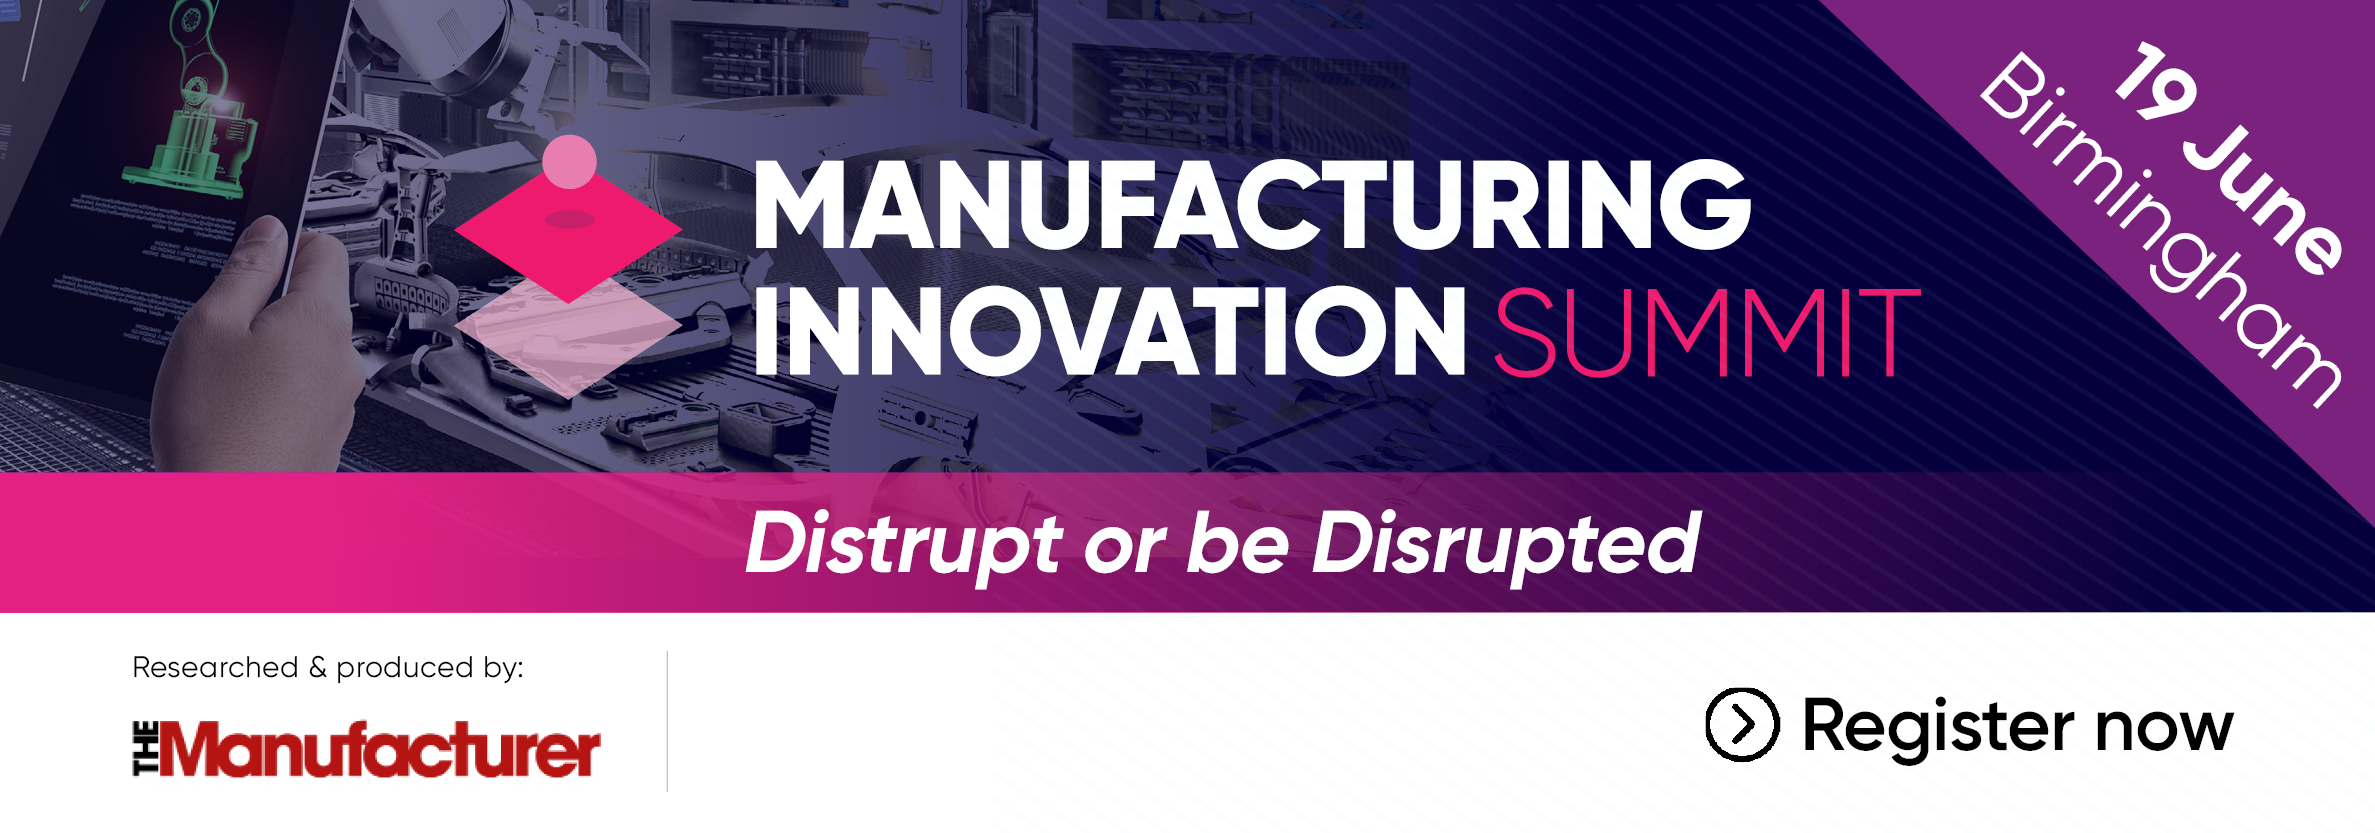 Manufacturing Innovation Summit 2019 - Banner